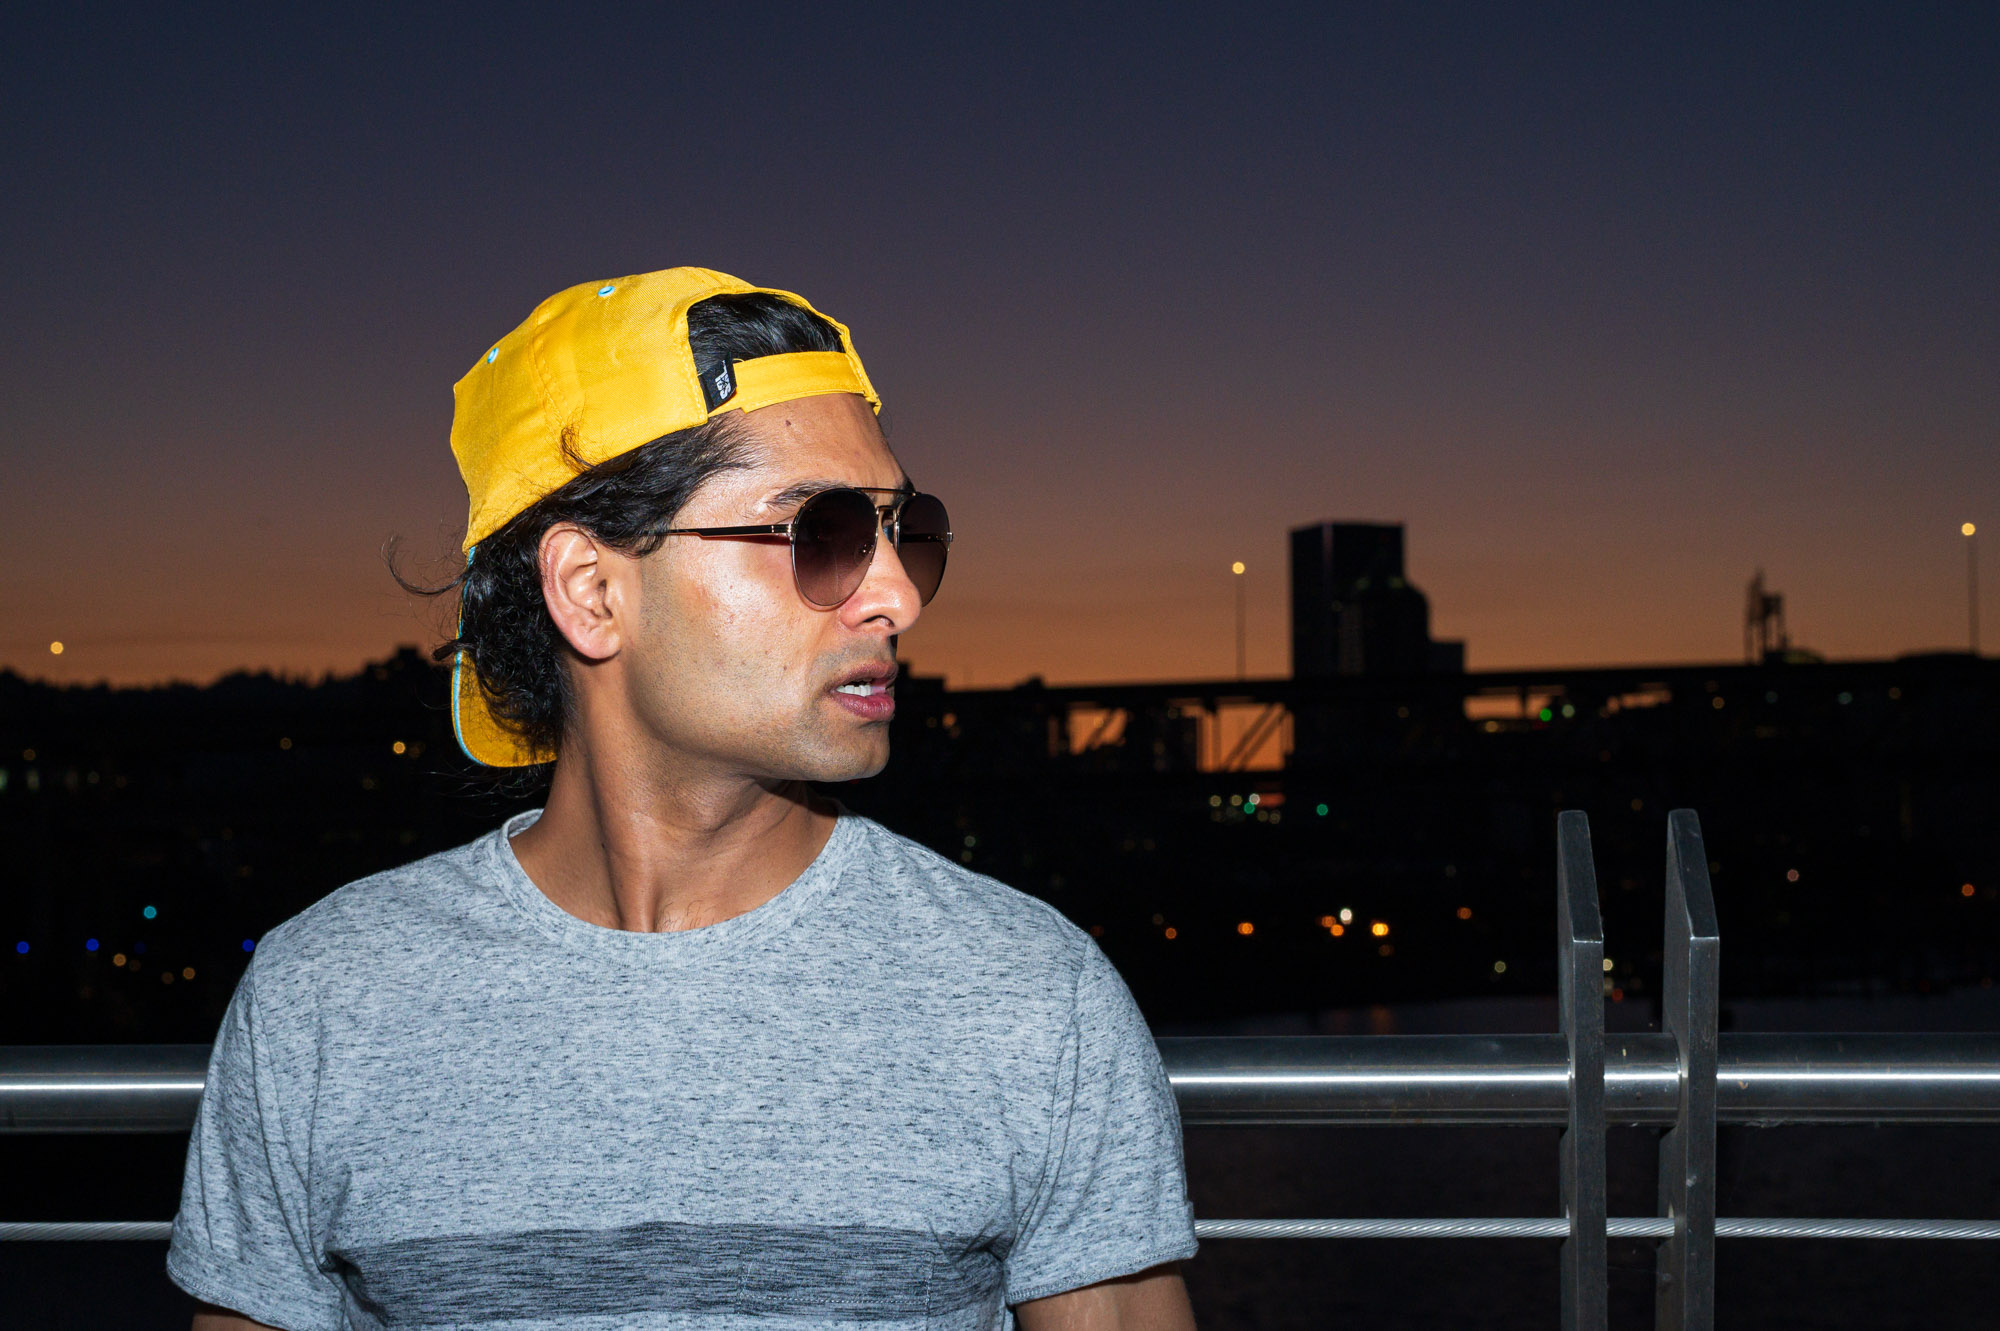 a man in a yellow ballcap stands on a bridge as the sun goes down